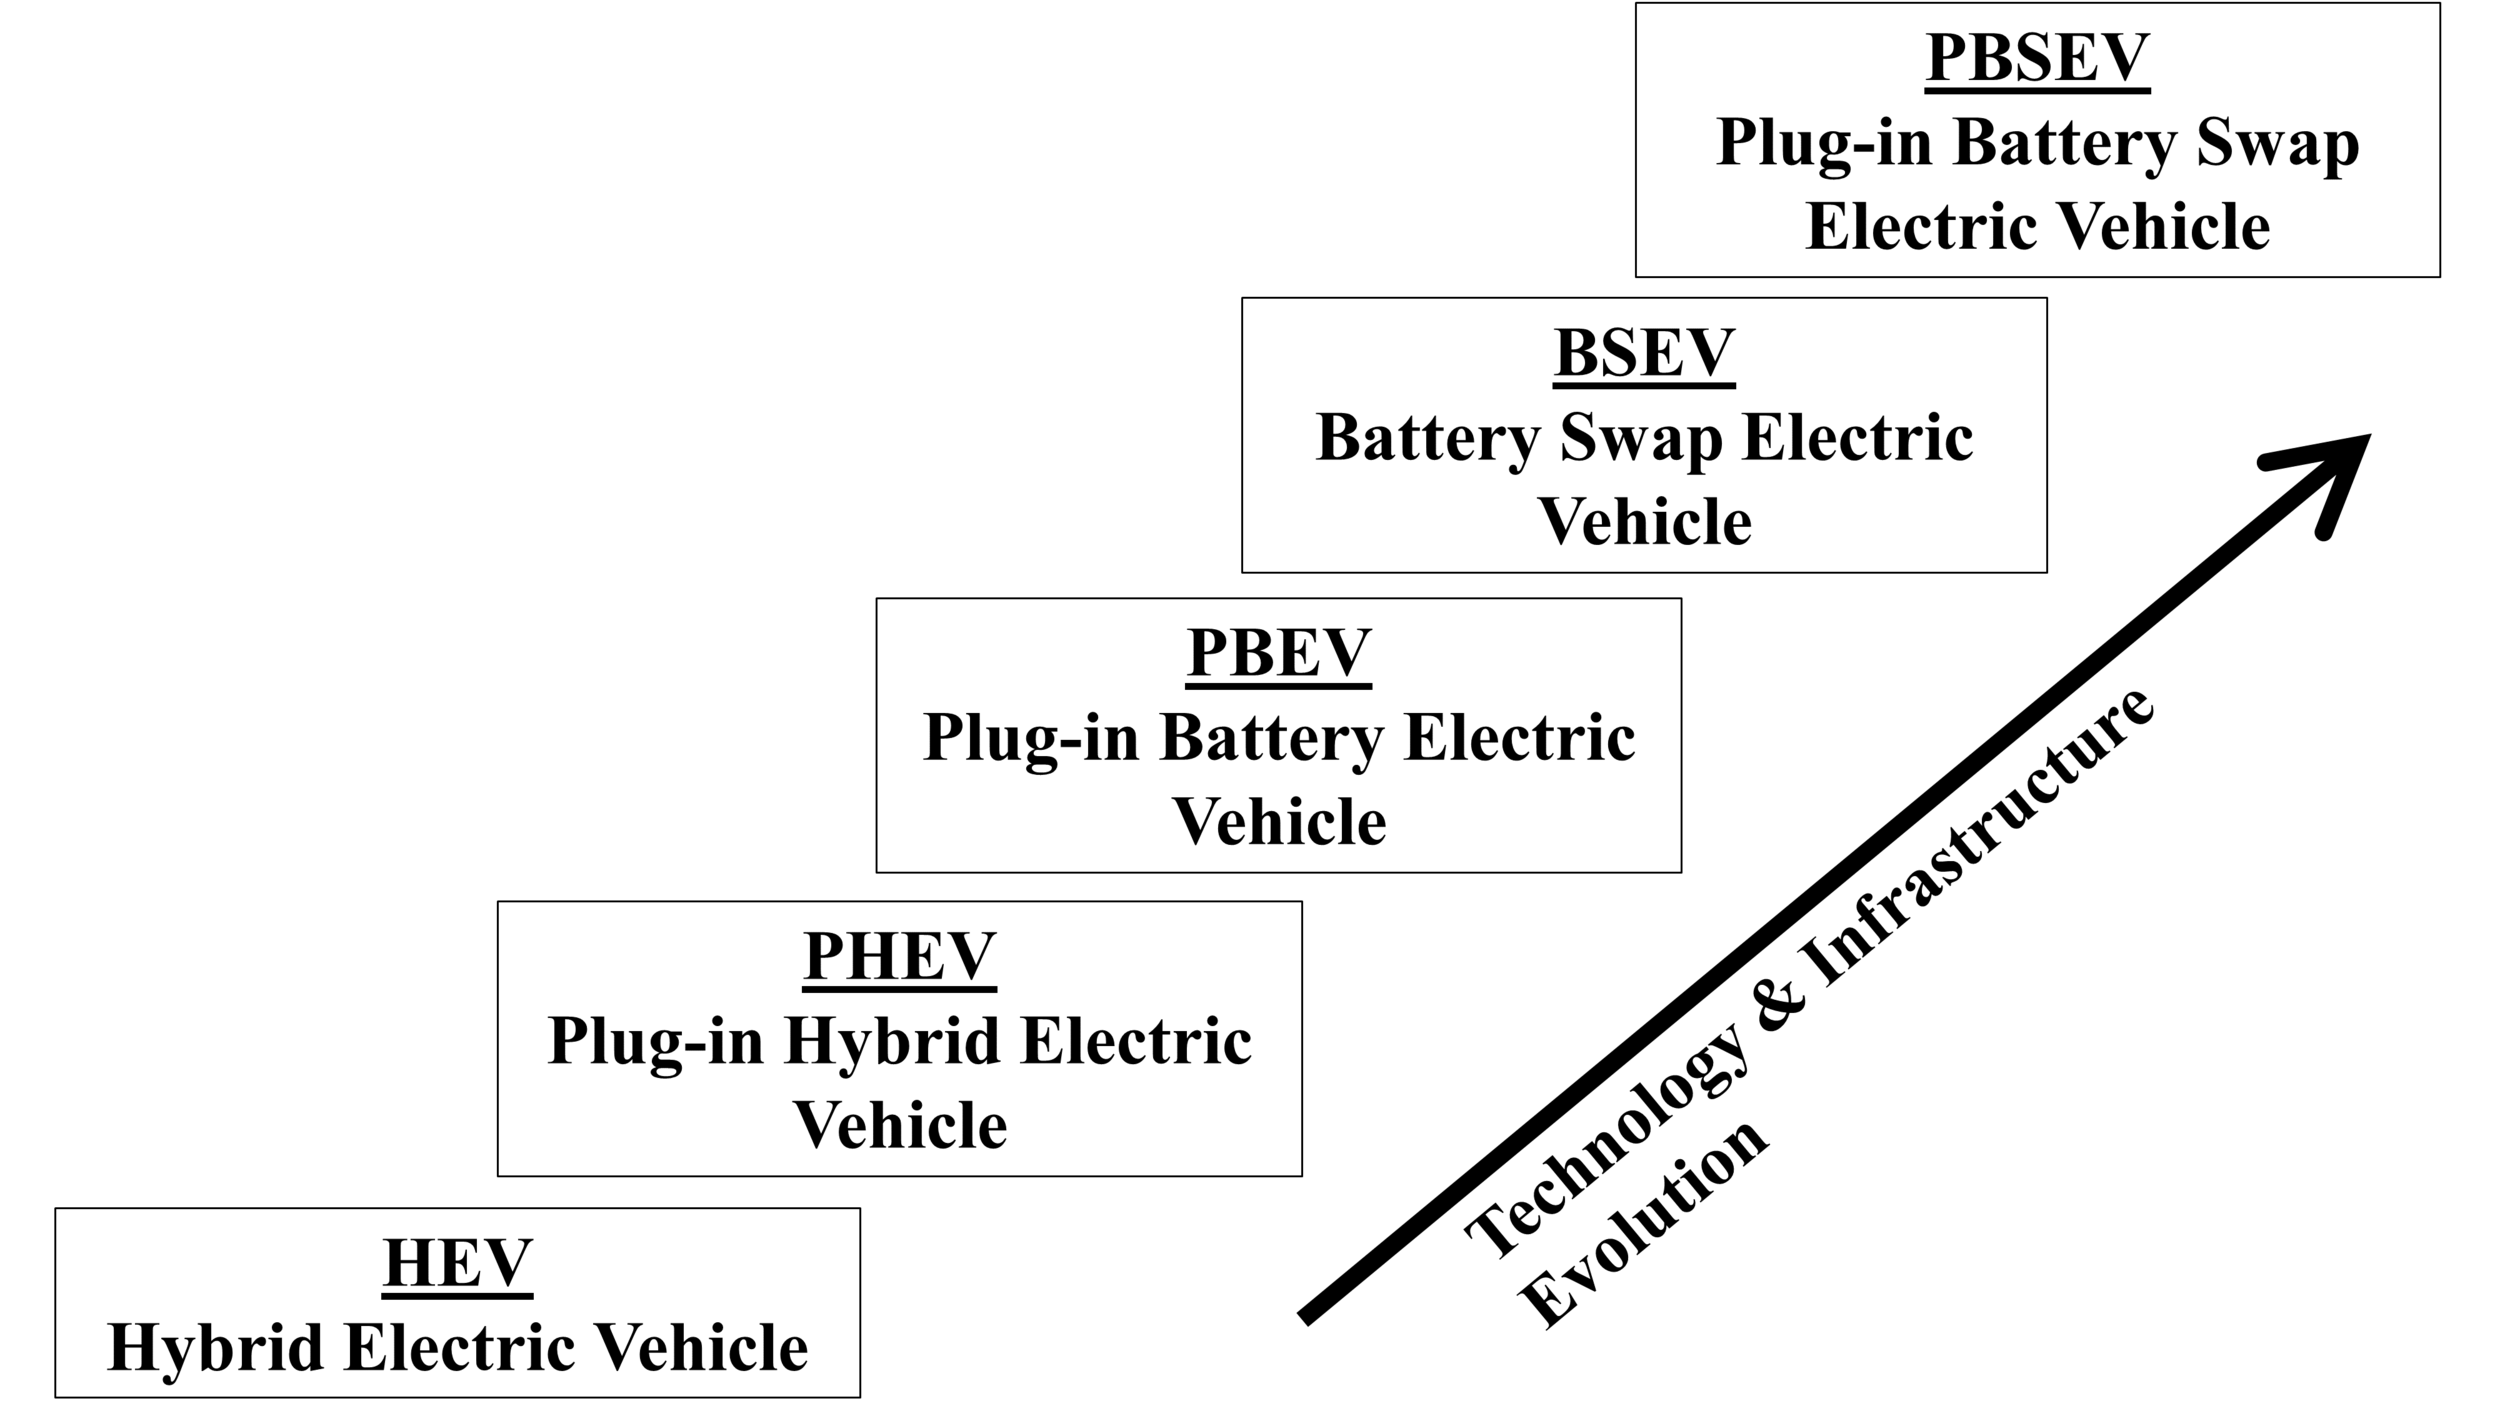 Figure 2. Evolution of electric vehicles globally during the pat decade; abbreviations are underlined. (Appendix 1, bottom of paper, describes vehicle types in detail.)